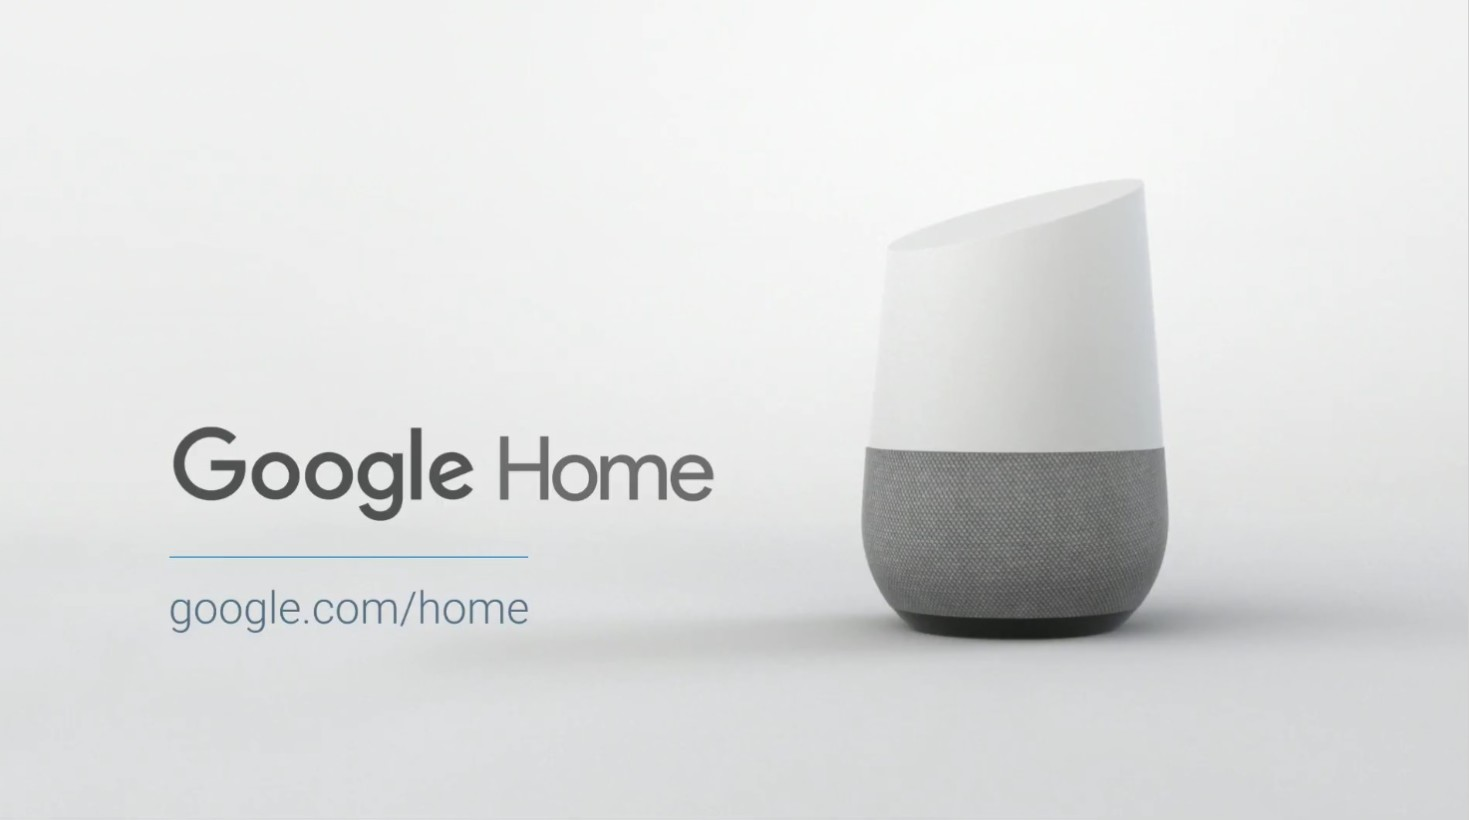 how to get google home mini free in australia